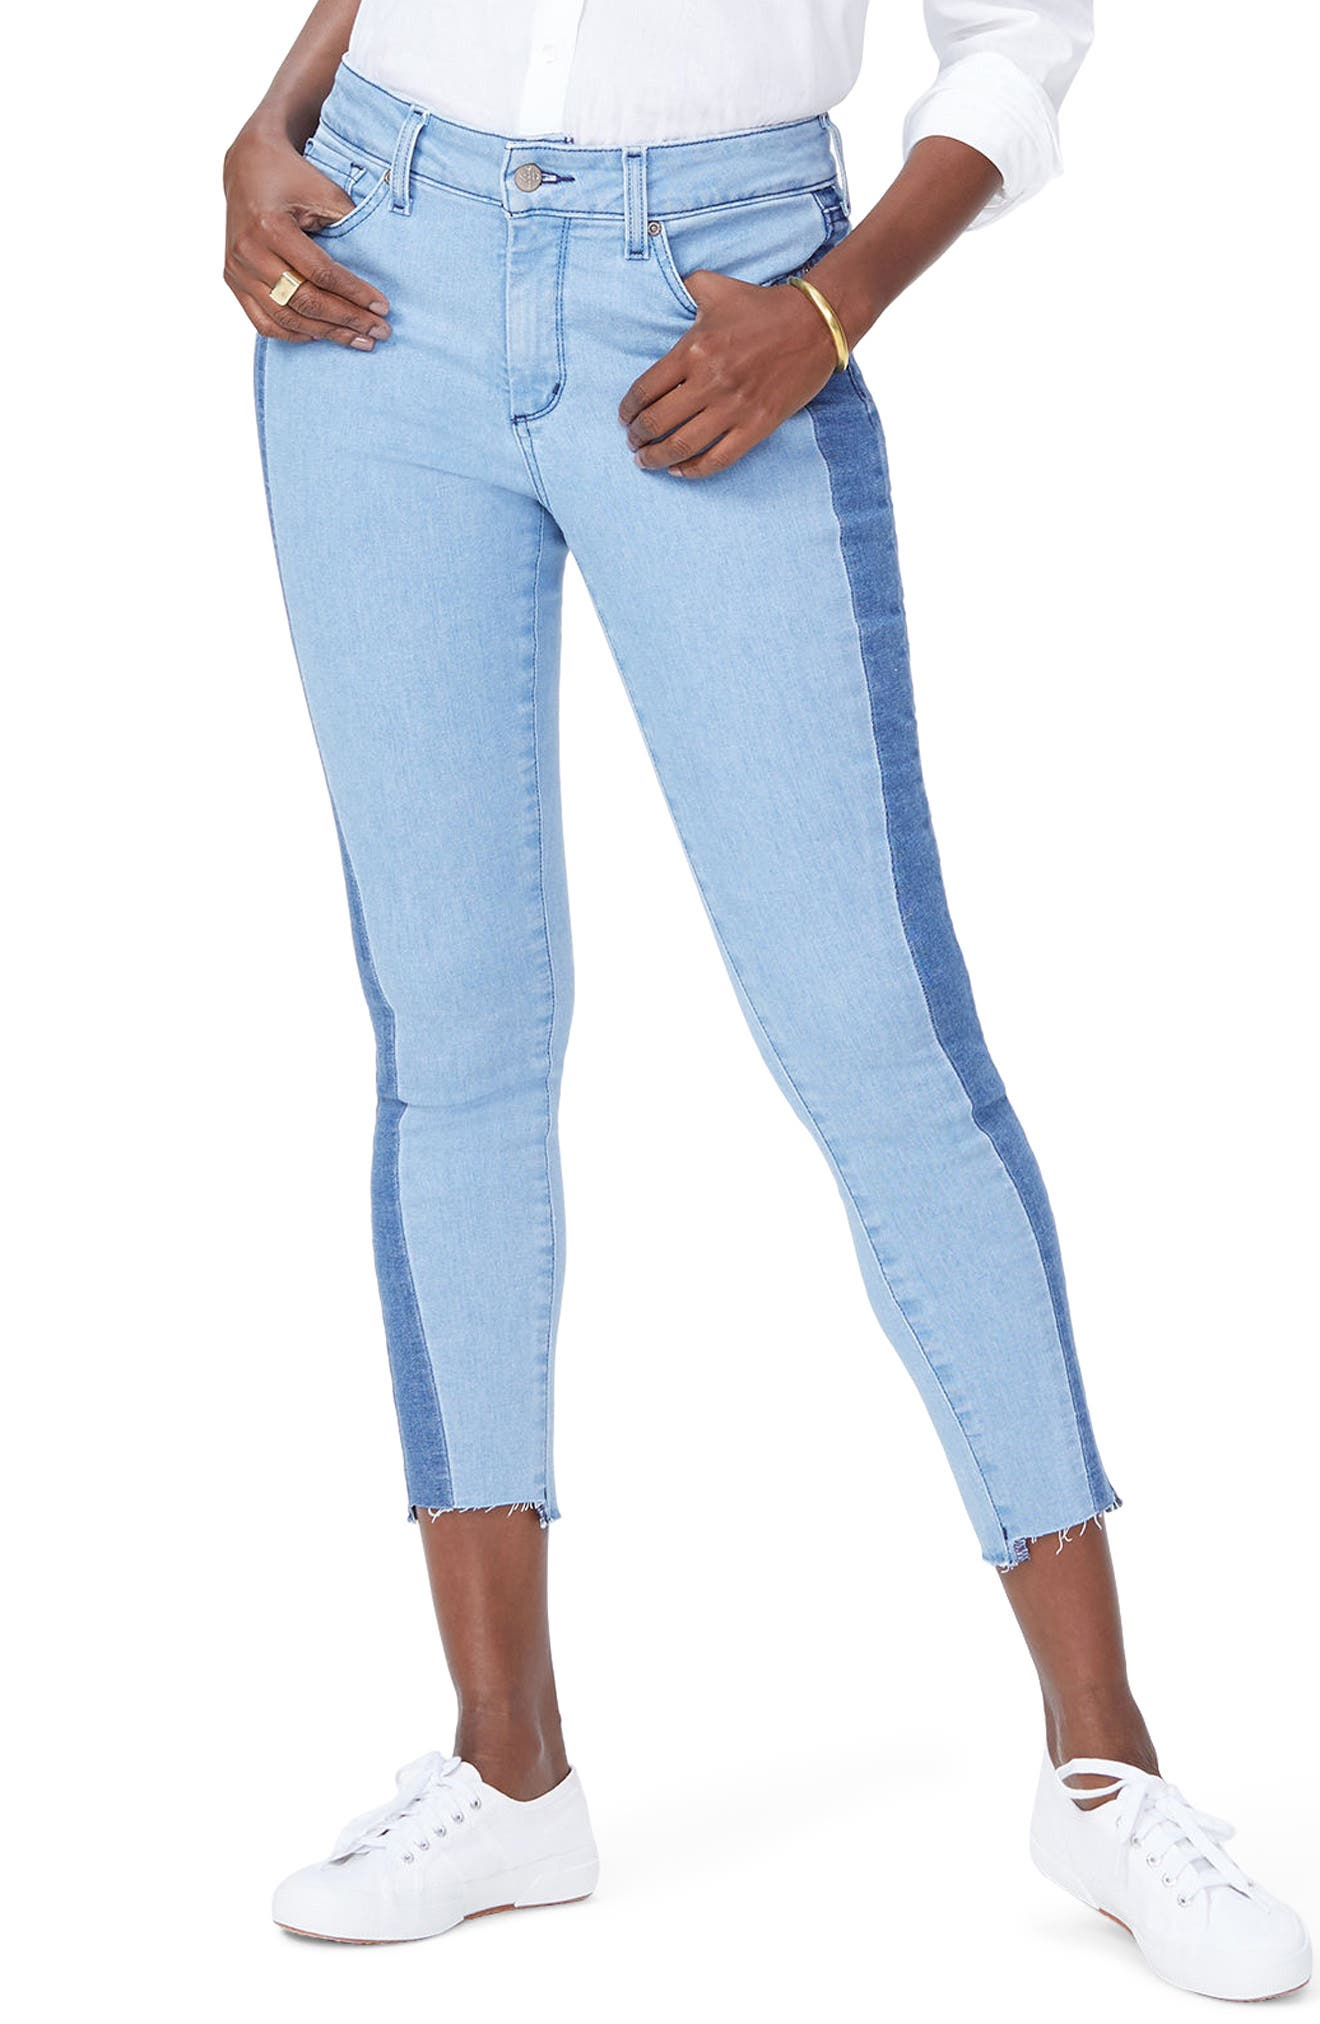 Ami Stretch Ankle Skinny Contrast Step Hem Jeans,                             Main thumbnail 1, color,                             Blissful